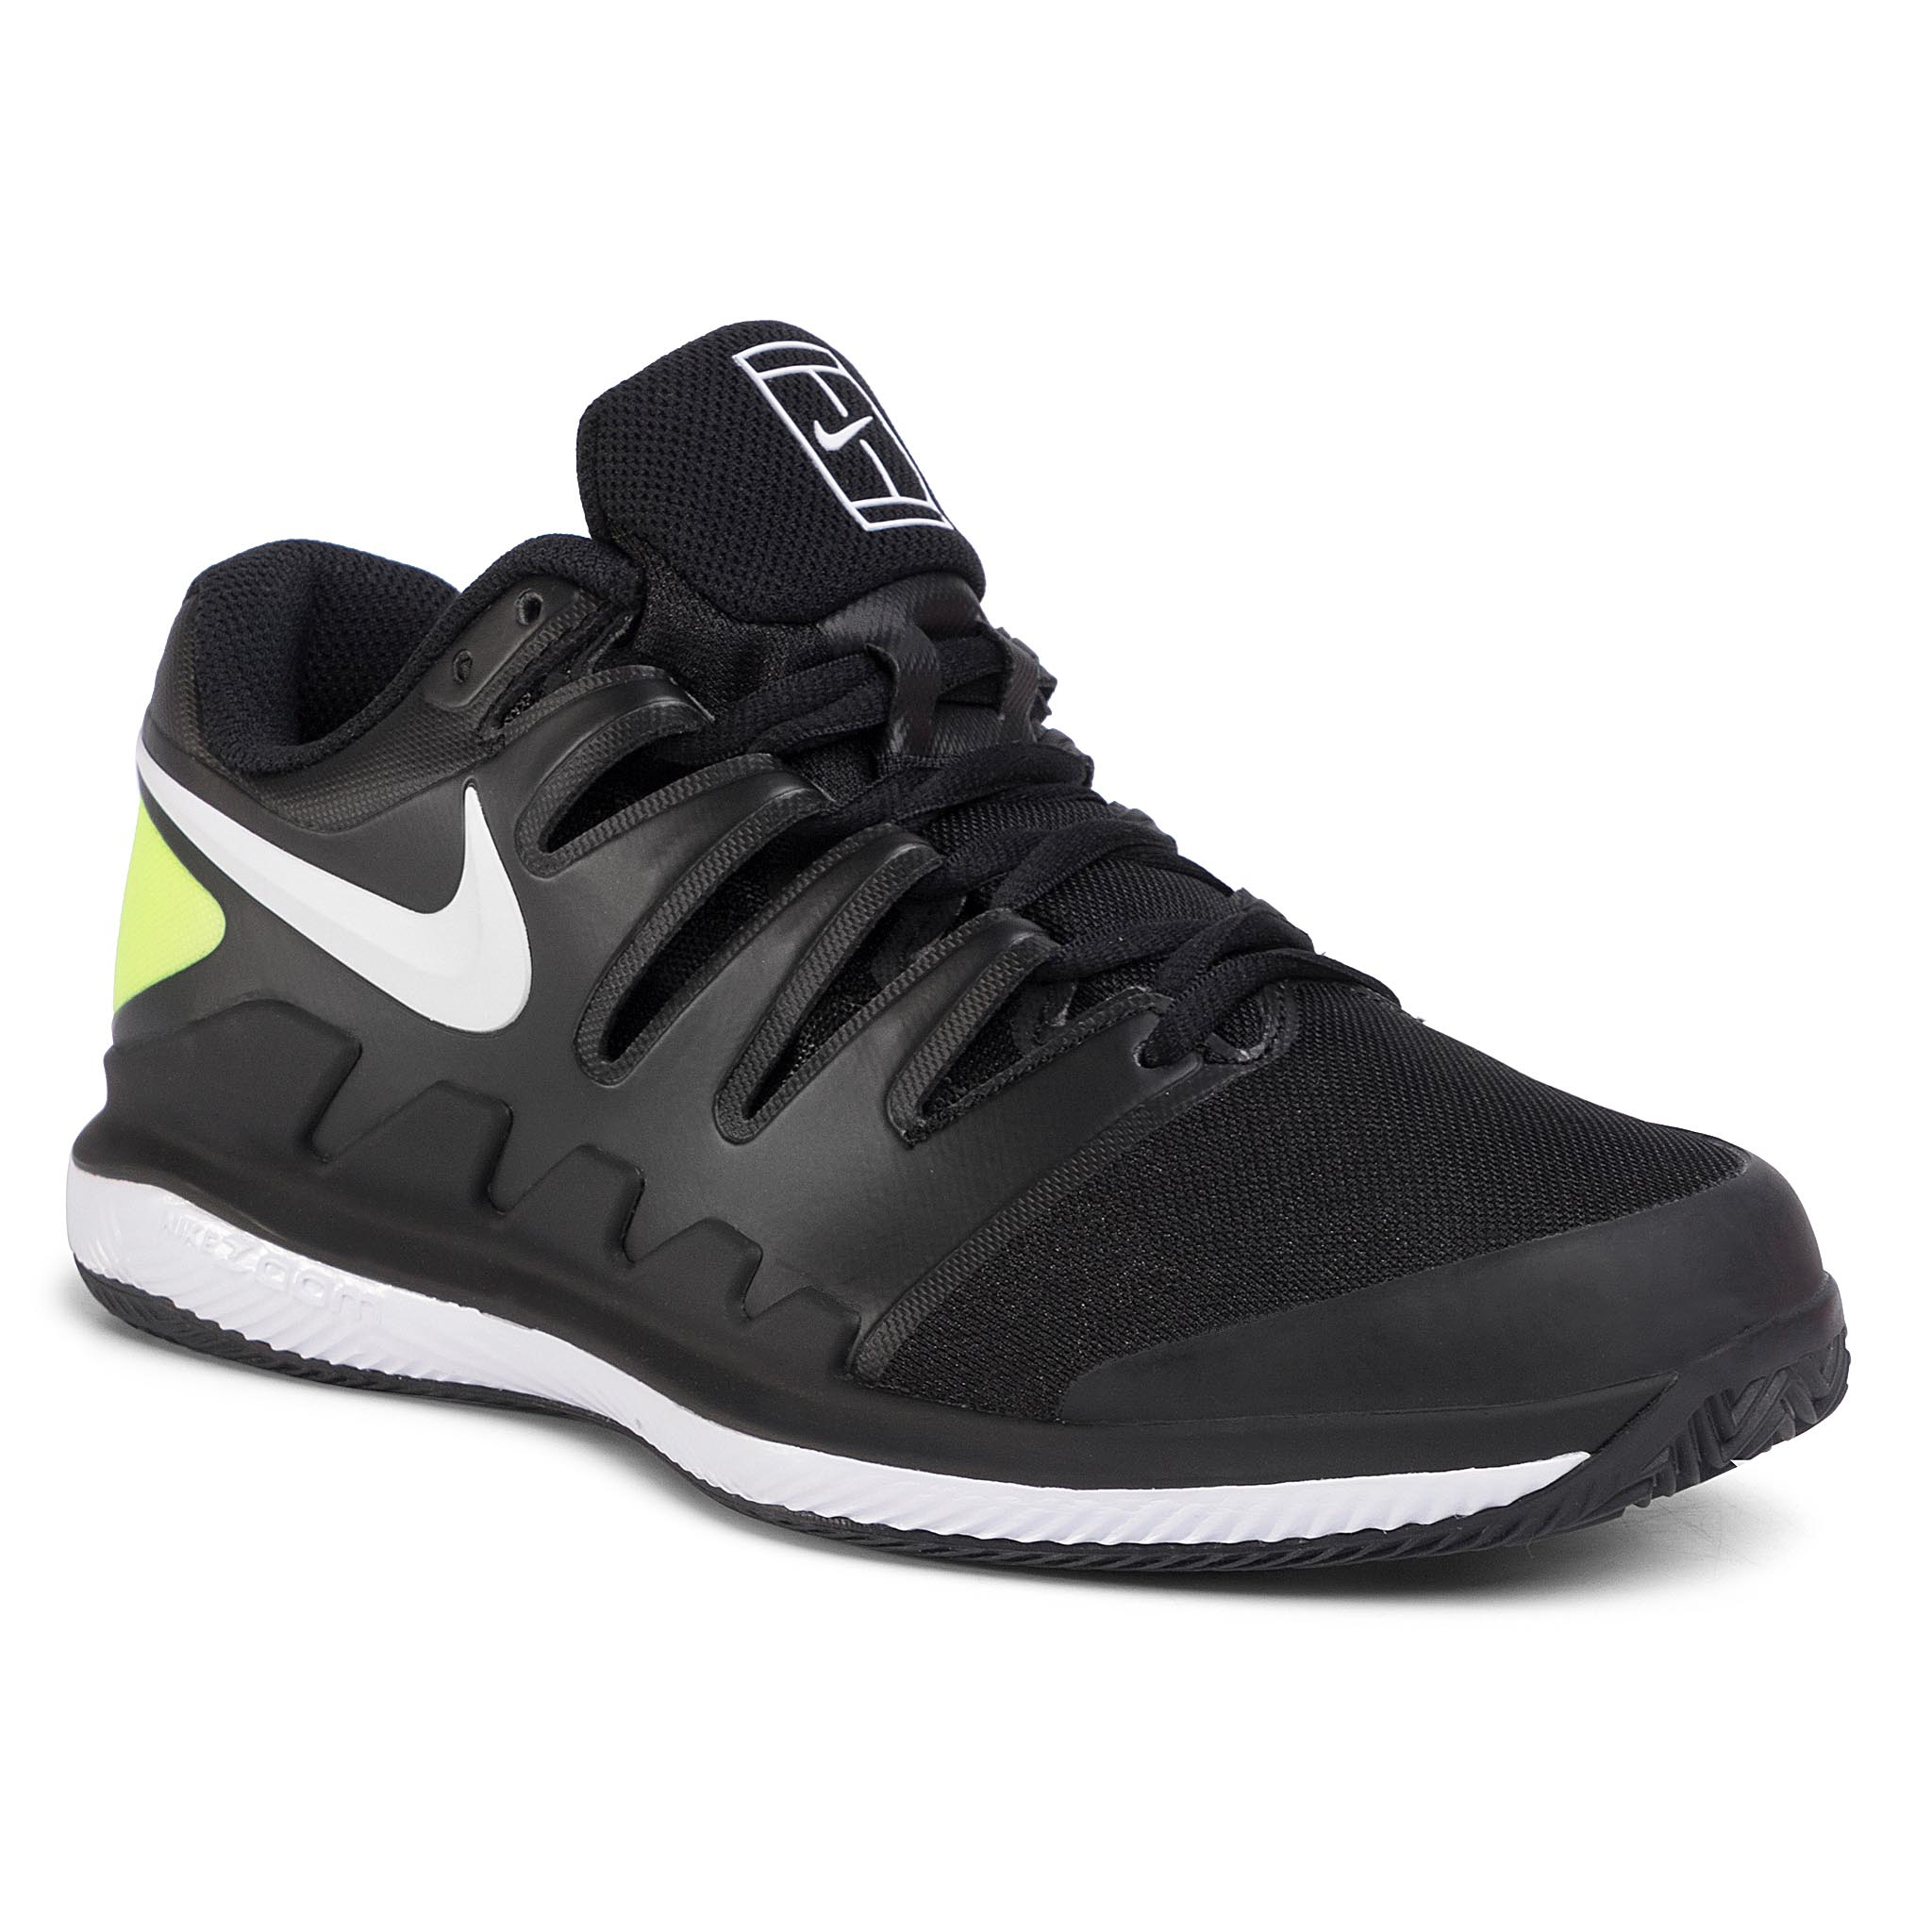 Pantofi Nike - Air Zoom Vapor X Cly Aa8021 009 Black/White/Volt imagine epantofi.ro 2021